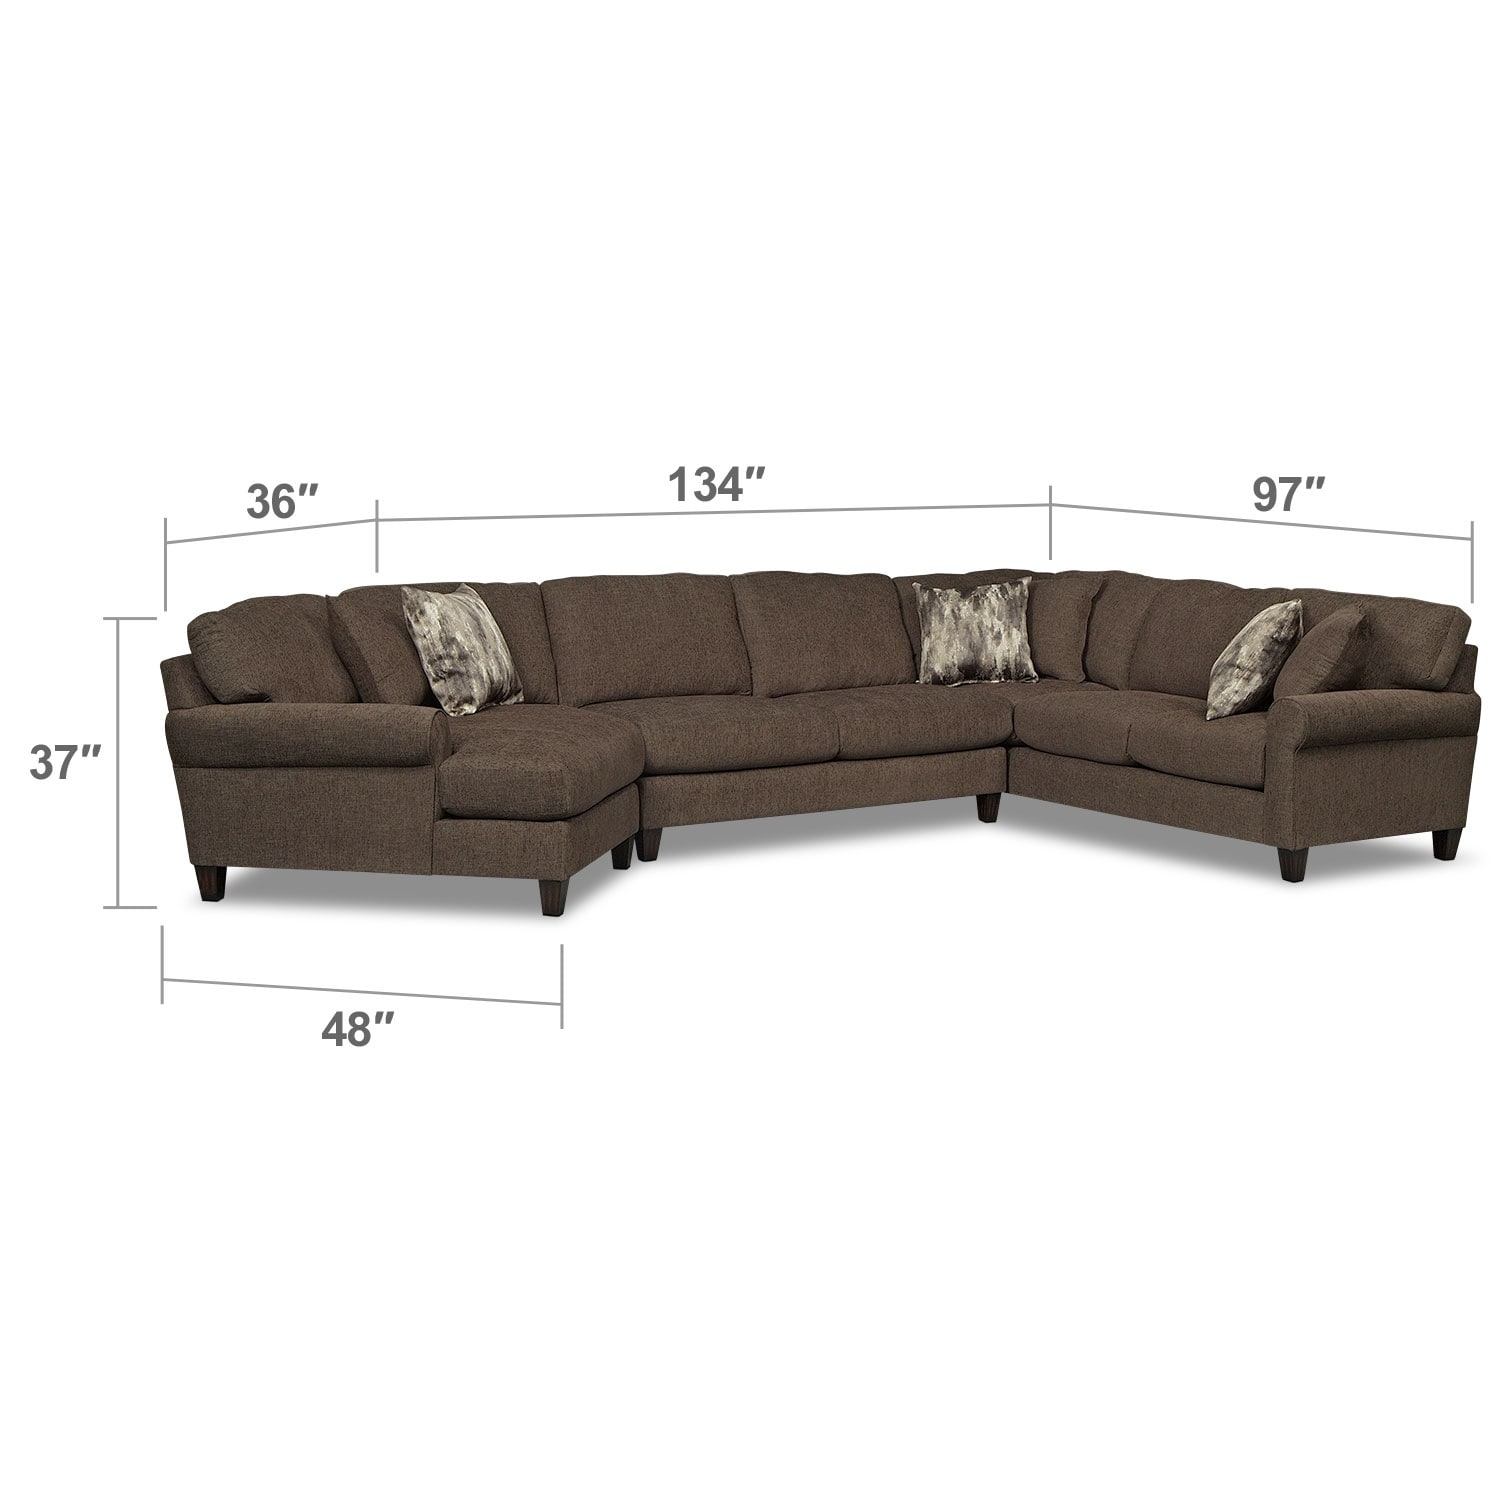 Living Room Furniture - Karma 3-Piece Sectional with Left-Facing Cuddler - Smoke